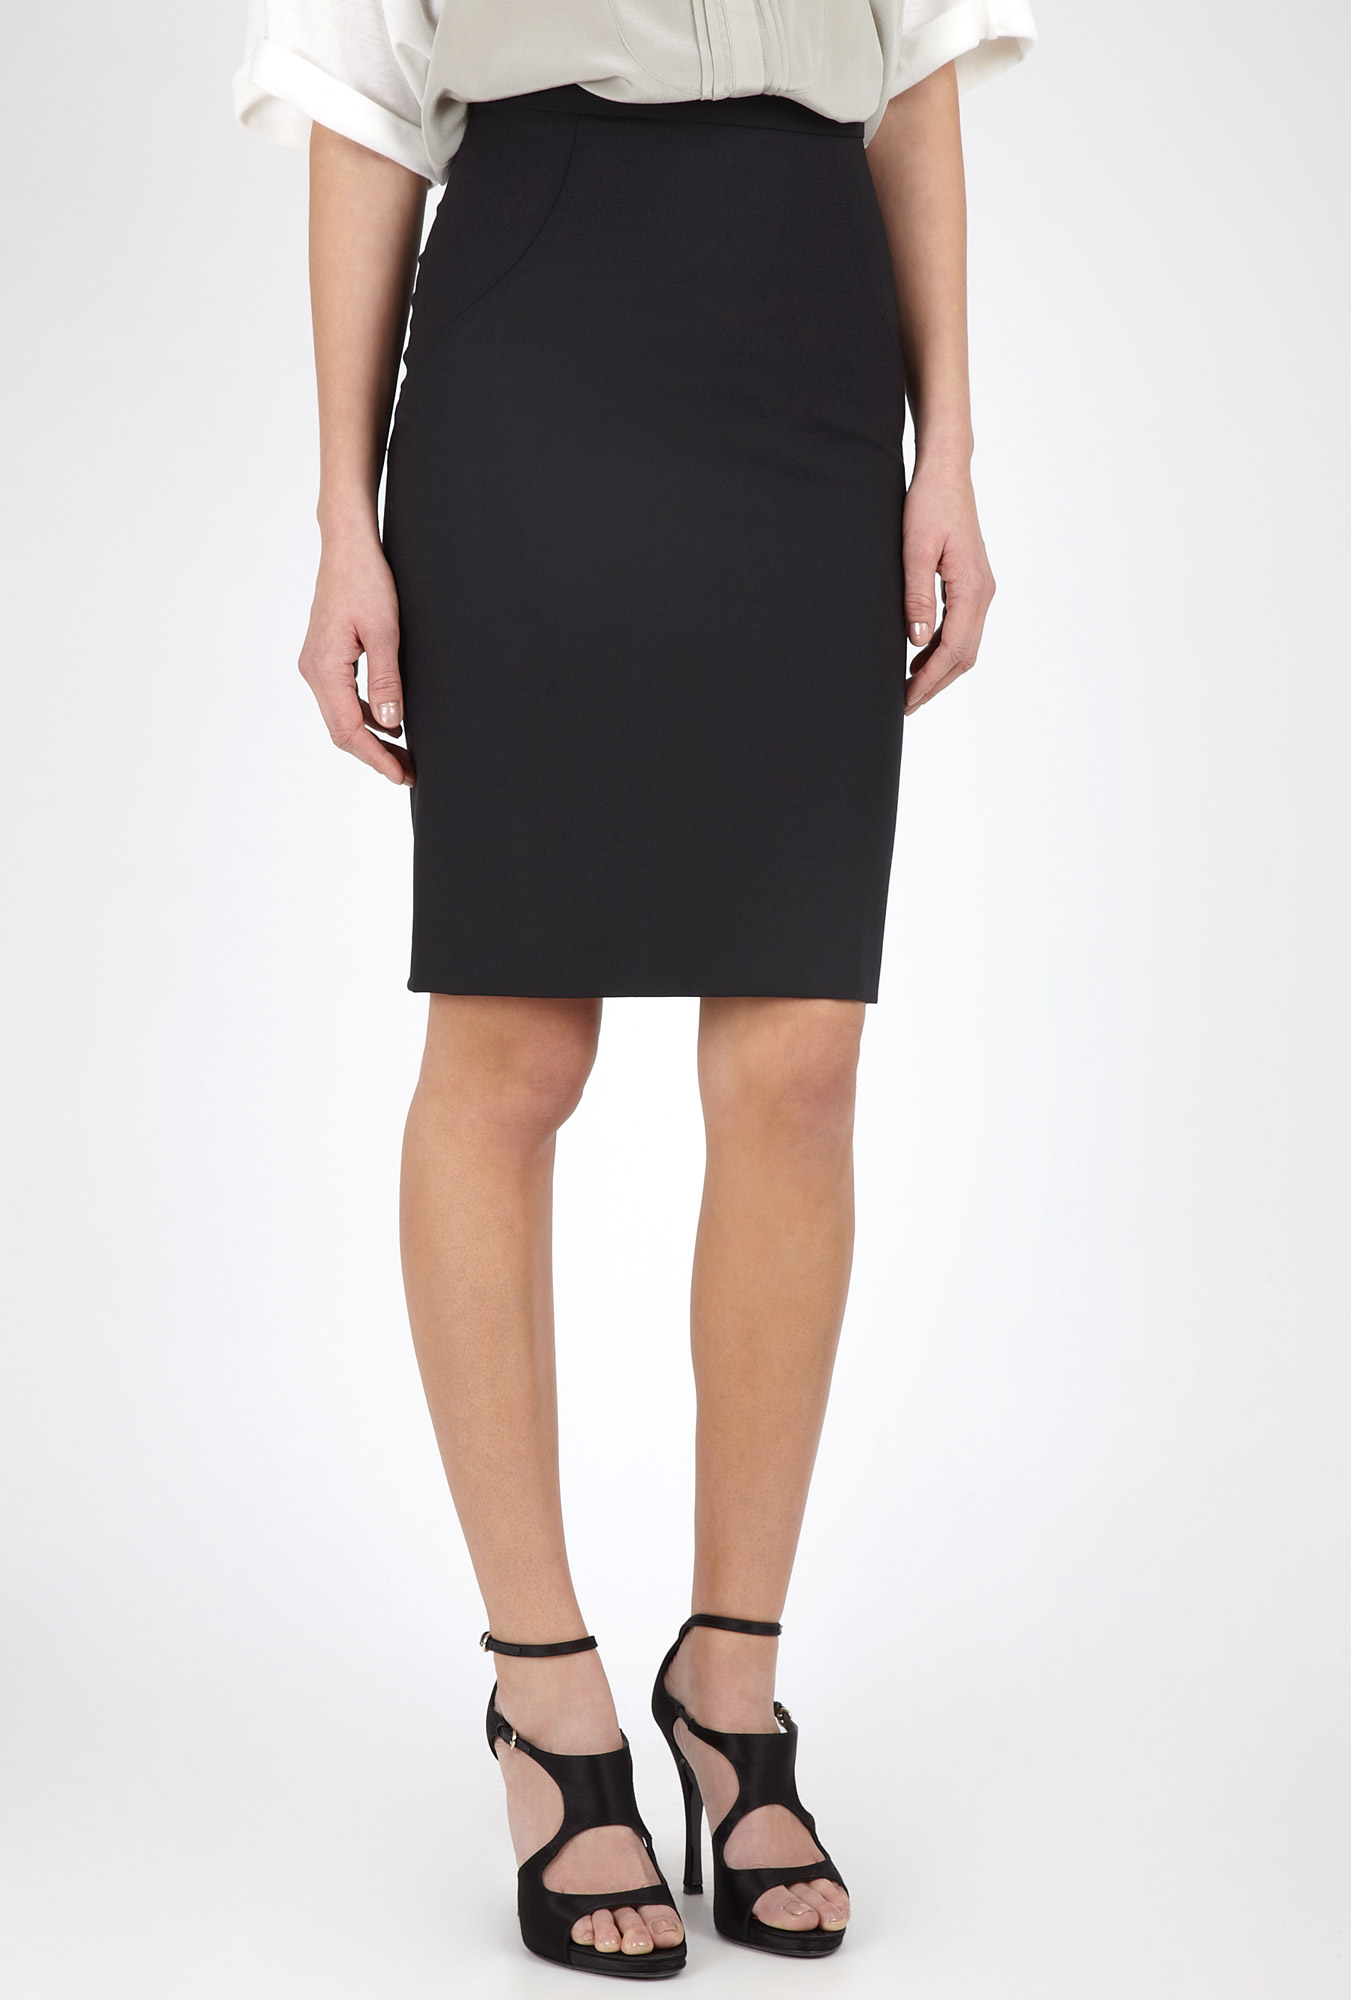 Exclusive Pencil Skirts For Women Sheplanet